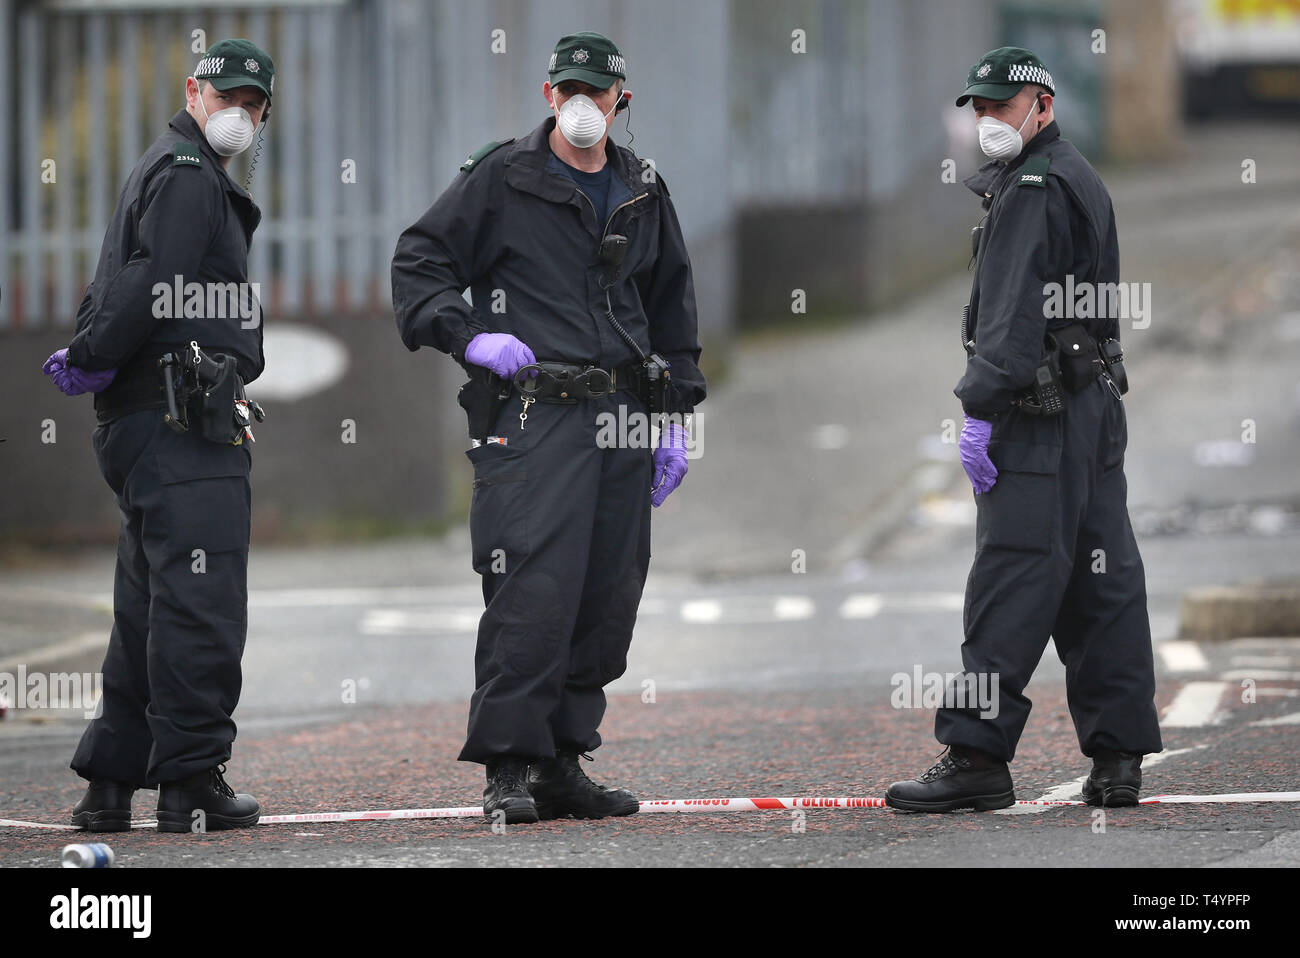 """Police at the scene in Londonderry, Northern Ireland, where 29-year-old journalist Lyra McKee was shot and killed when guns were fired and petrol bombs were thrown in what police are treating as a """"terrorist incident"""". Stock Photo"""